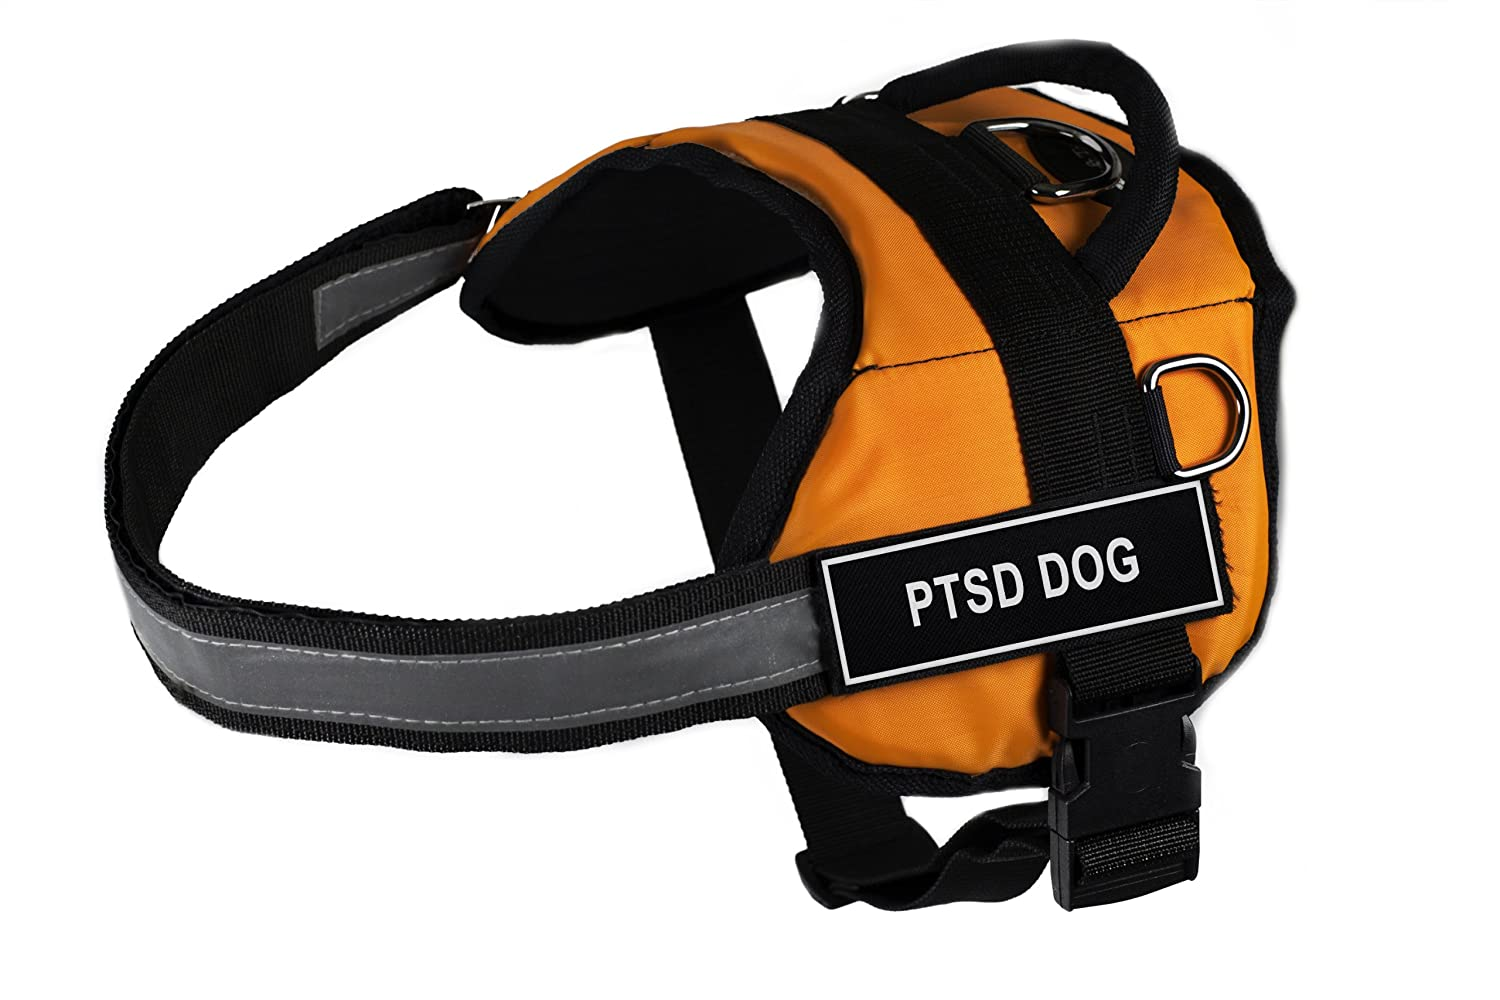 Dean & Tyler DT Works Harness PTSD Dog Pet Harness, Large, Fits Girth Size 34-Inch to 47-Inch, orange Black